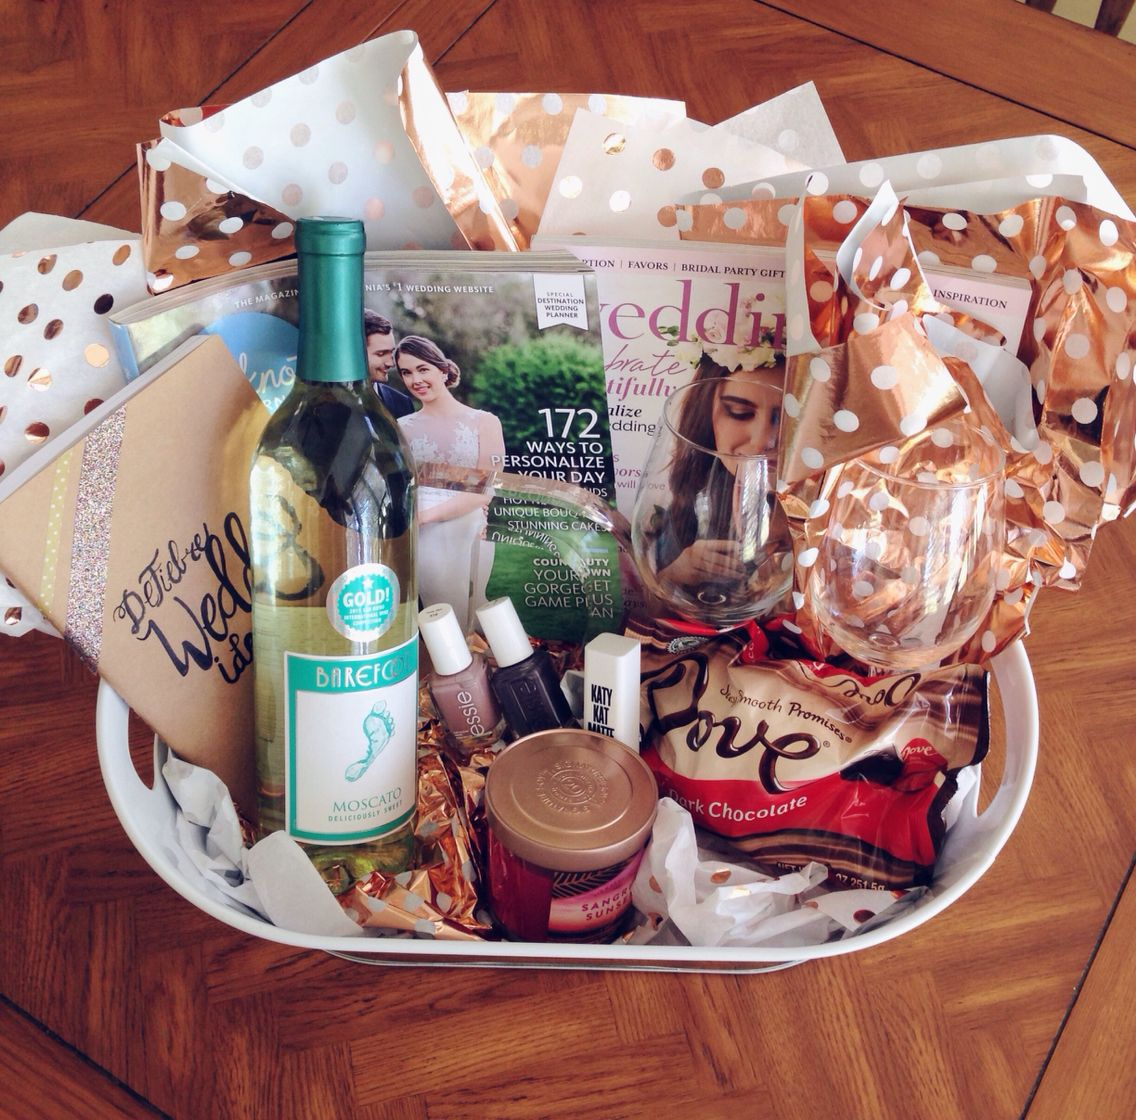 Pin by Amanda on Cool Gifts Engagement party gifts